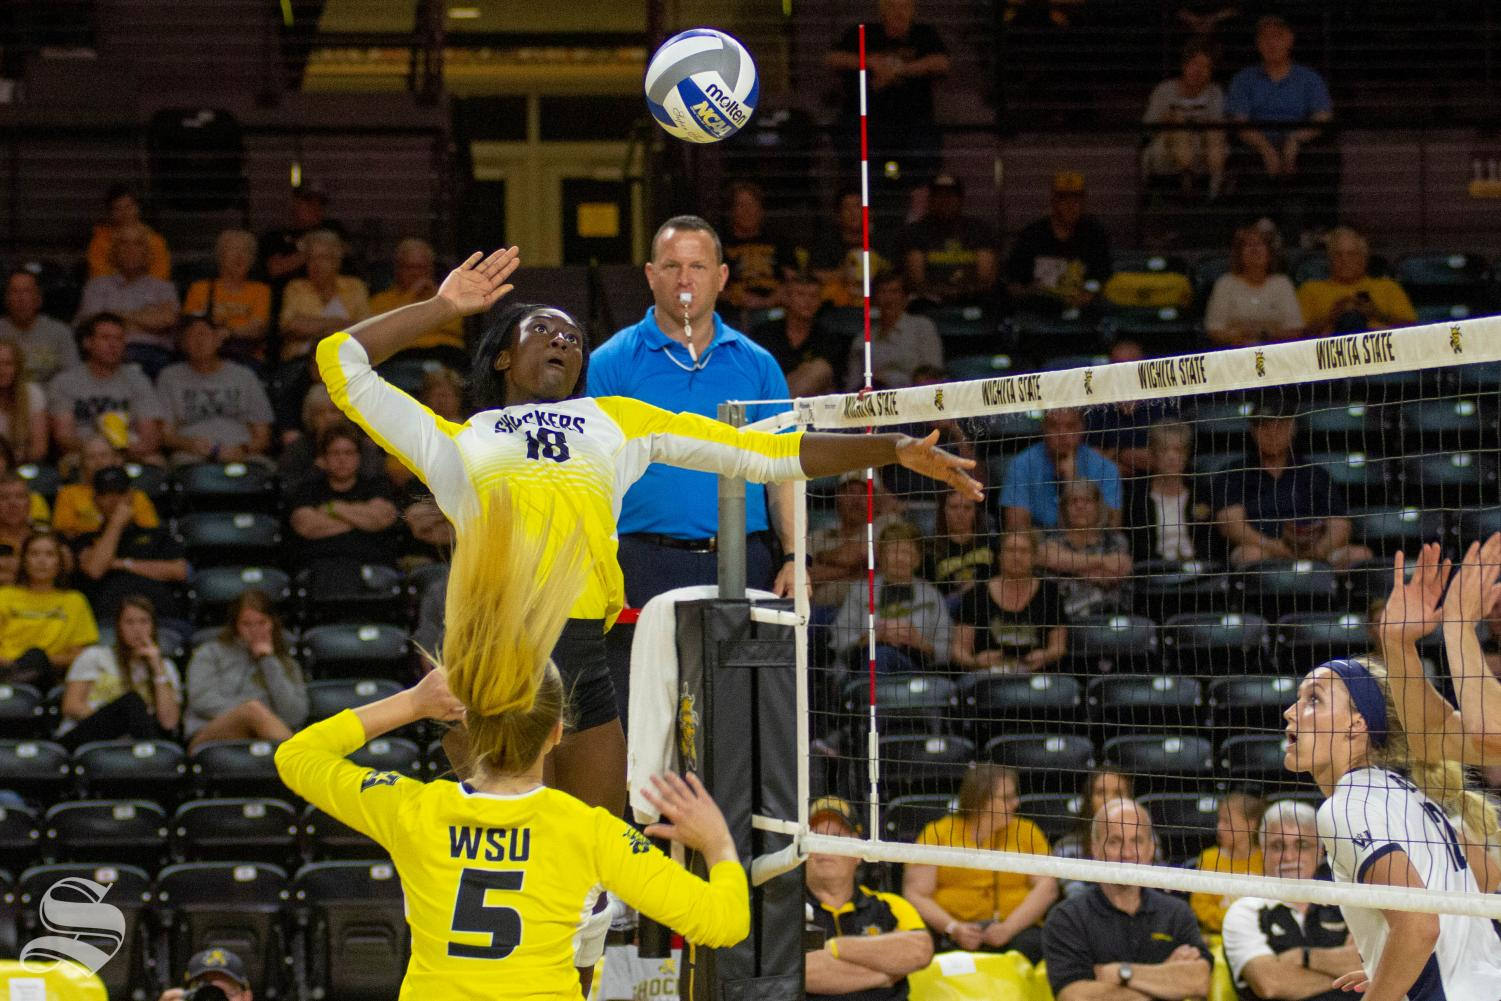 Wichita+State+redshirt+freshman+Chinelo+Ogogor+goes+up+for+a+kill+against+BYU.